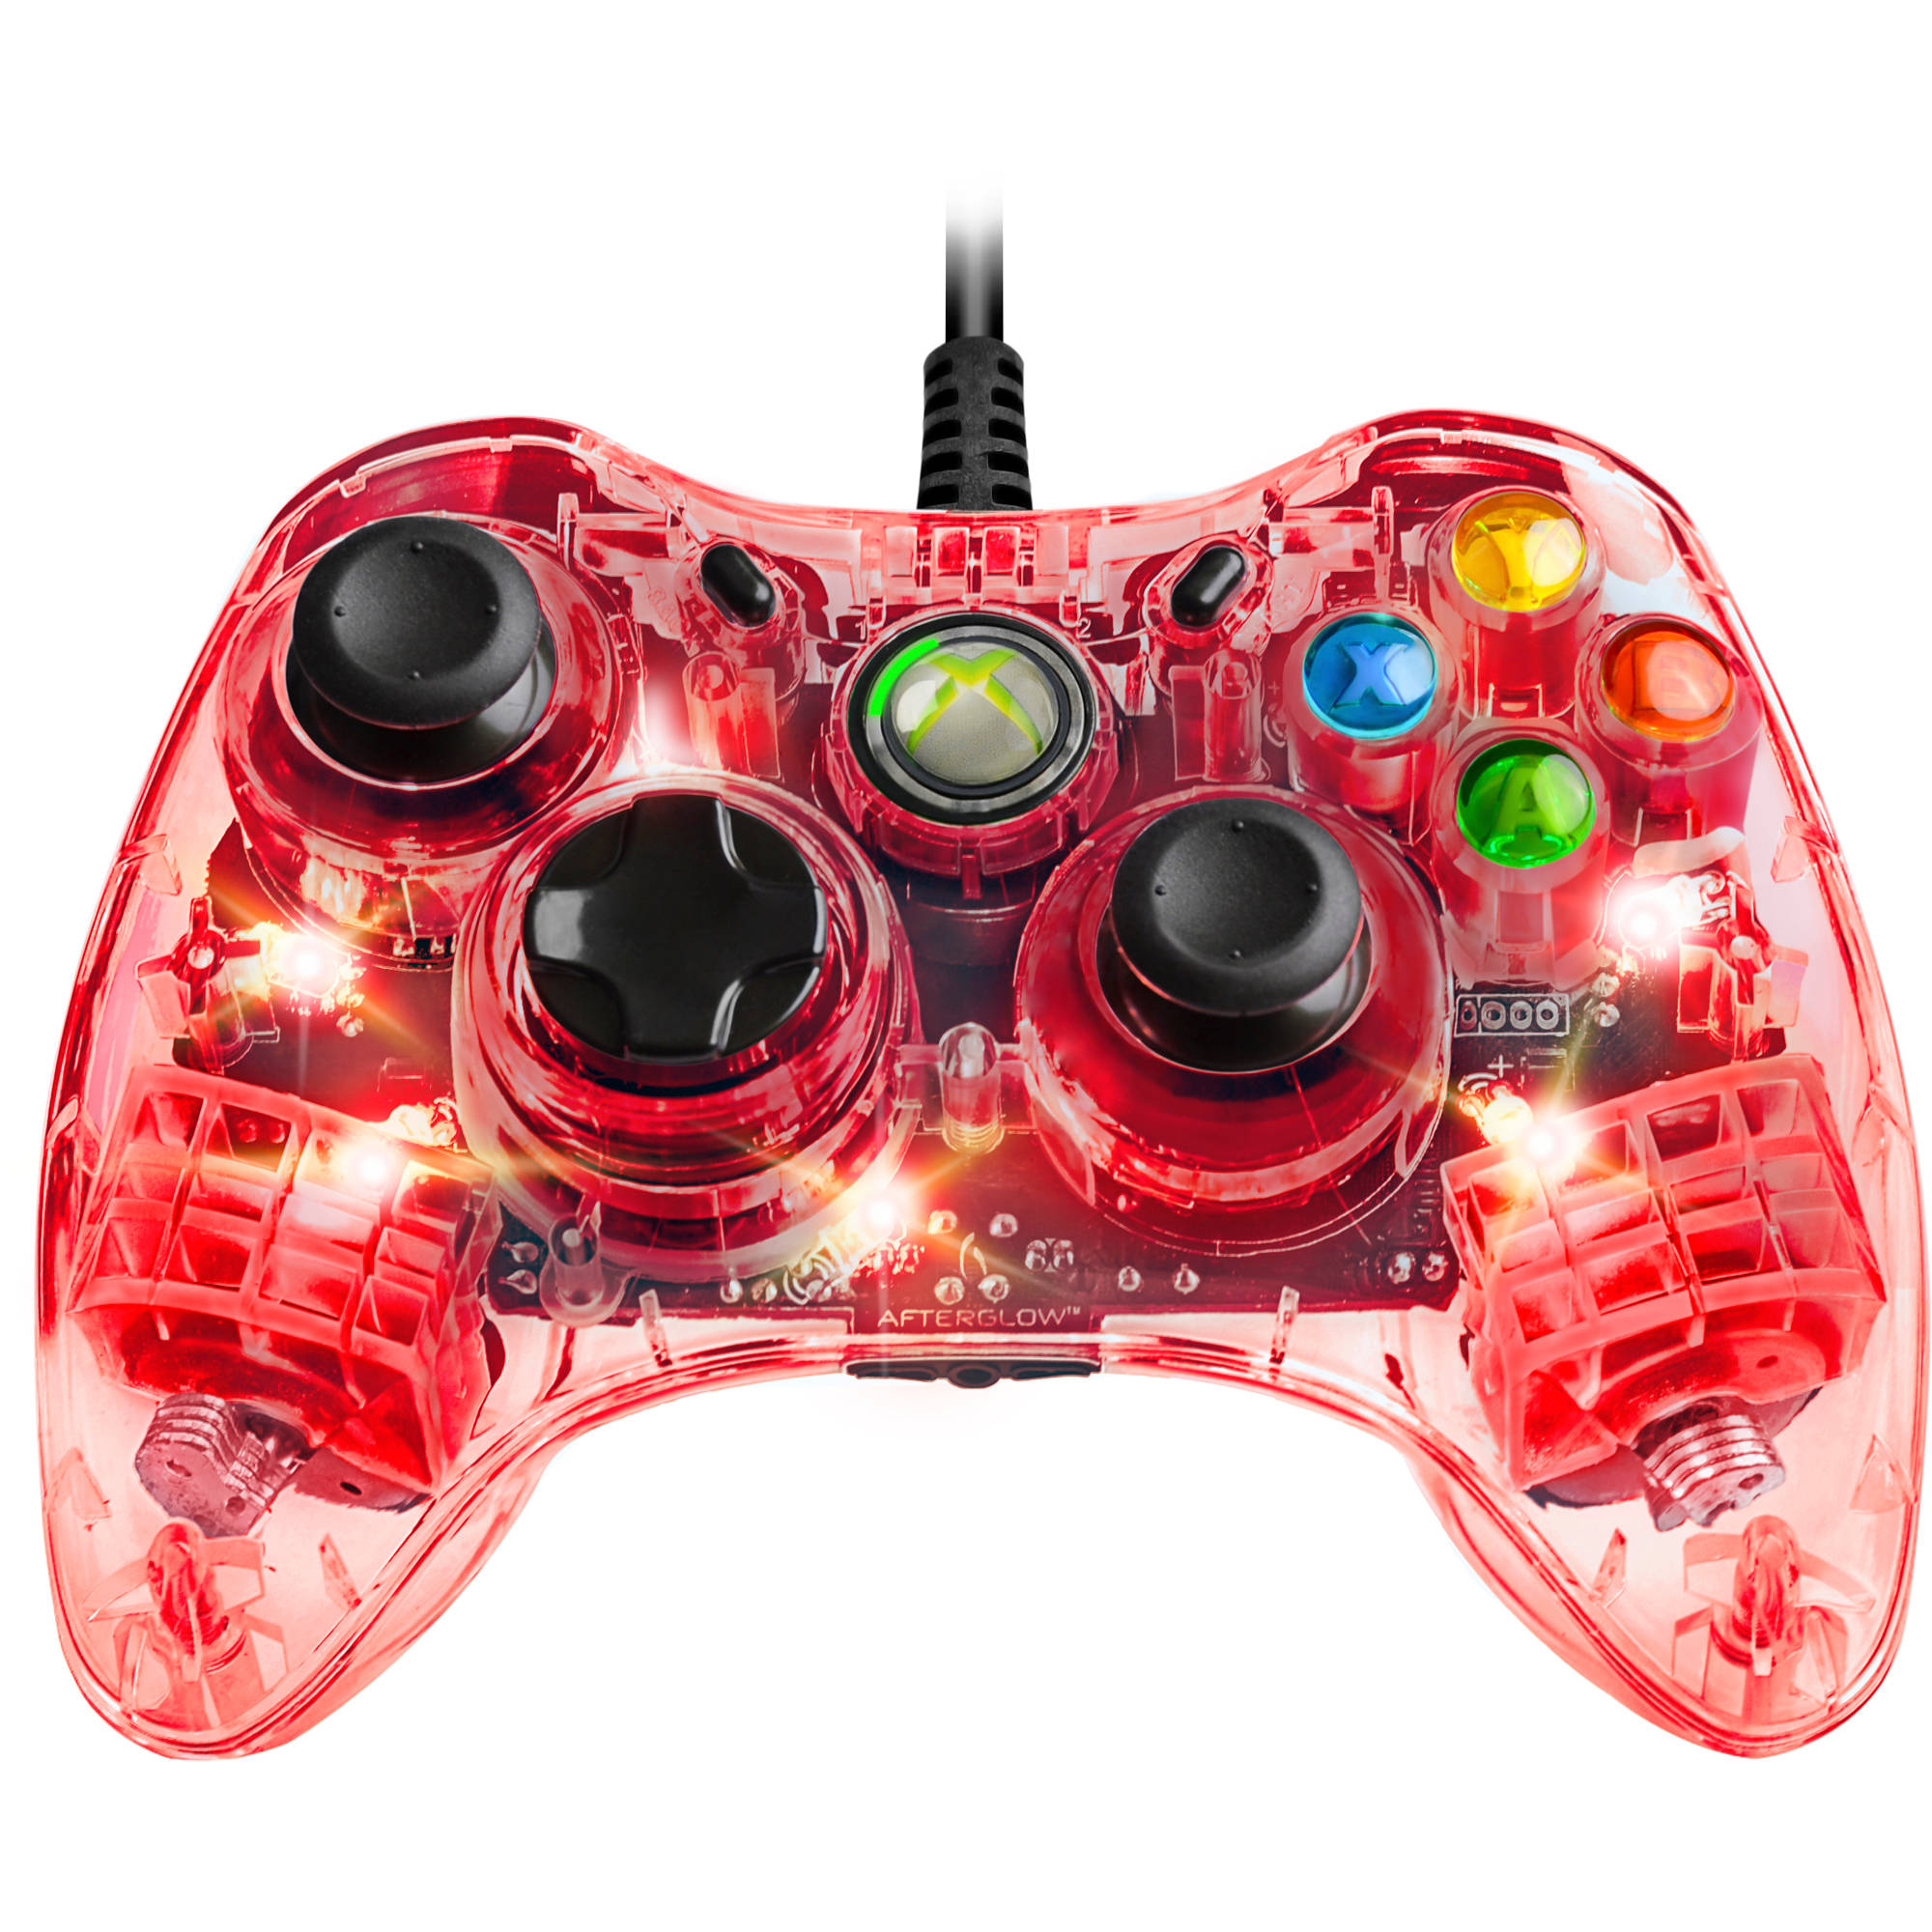 PDP Afterglow Controller, Red (Xbox 360)